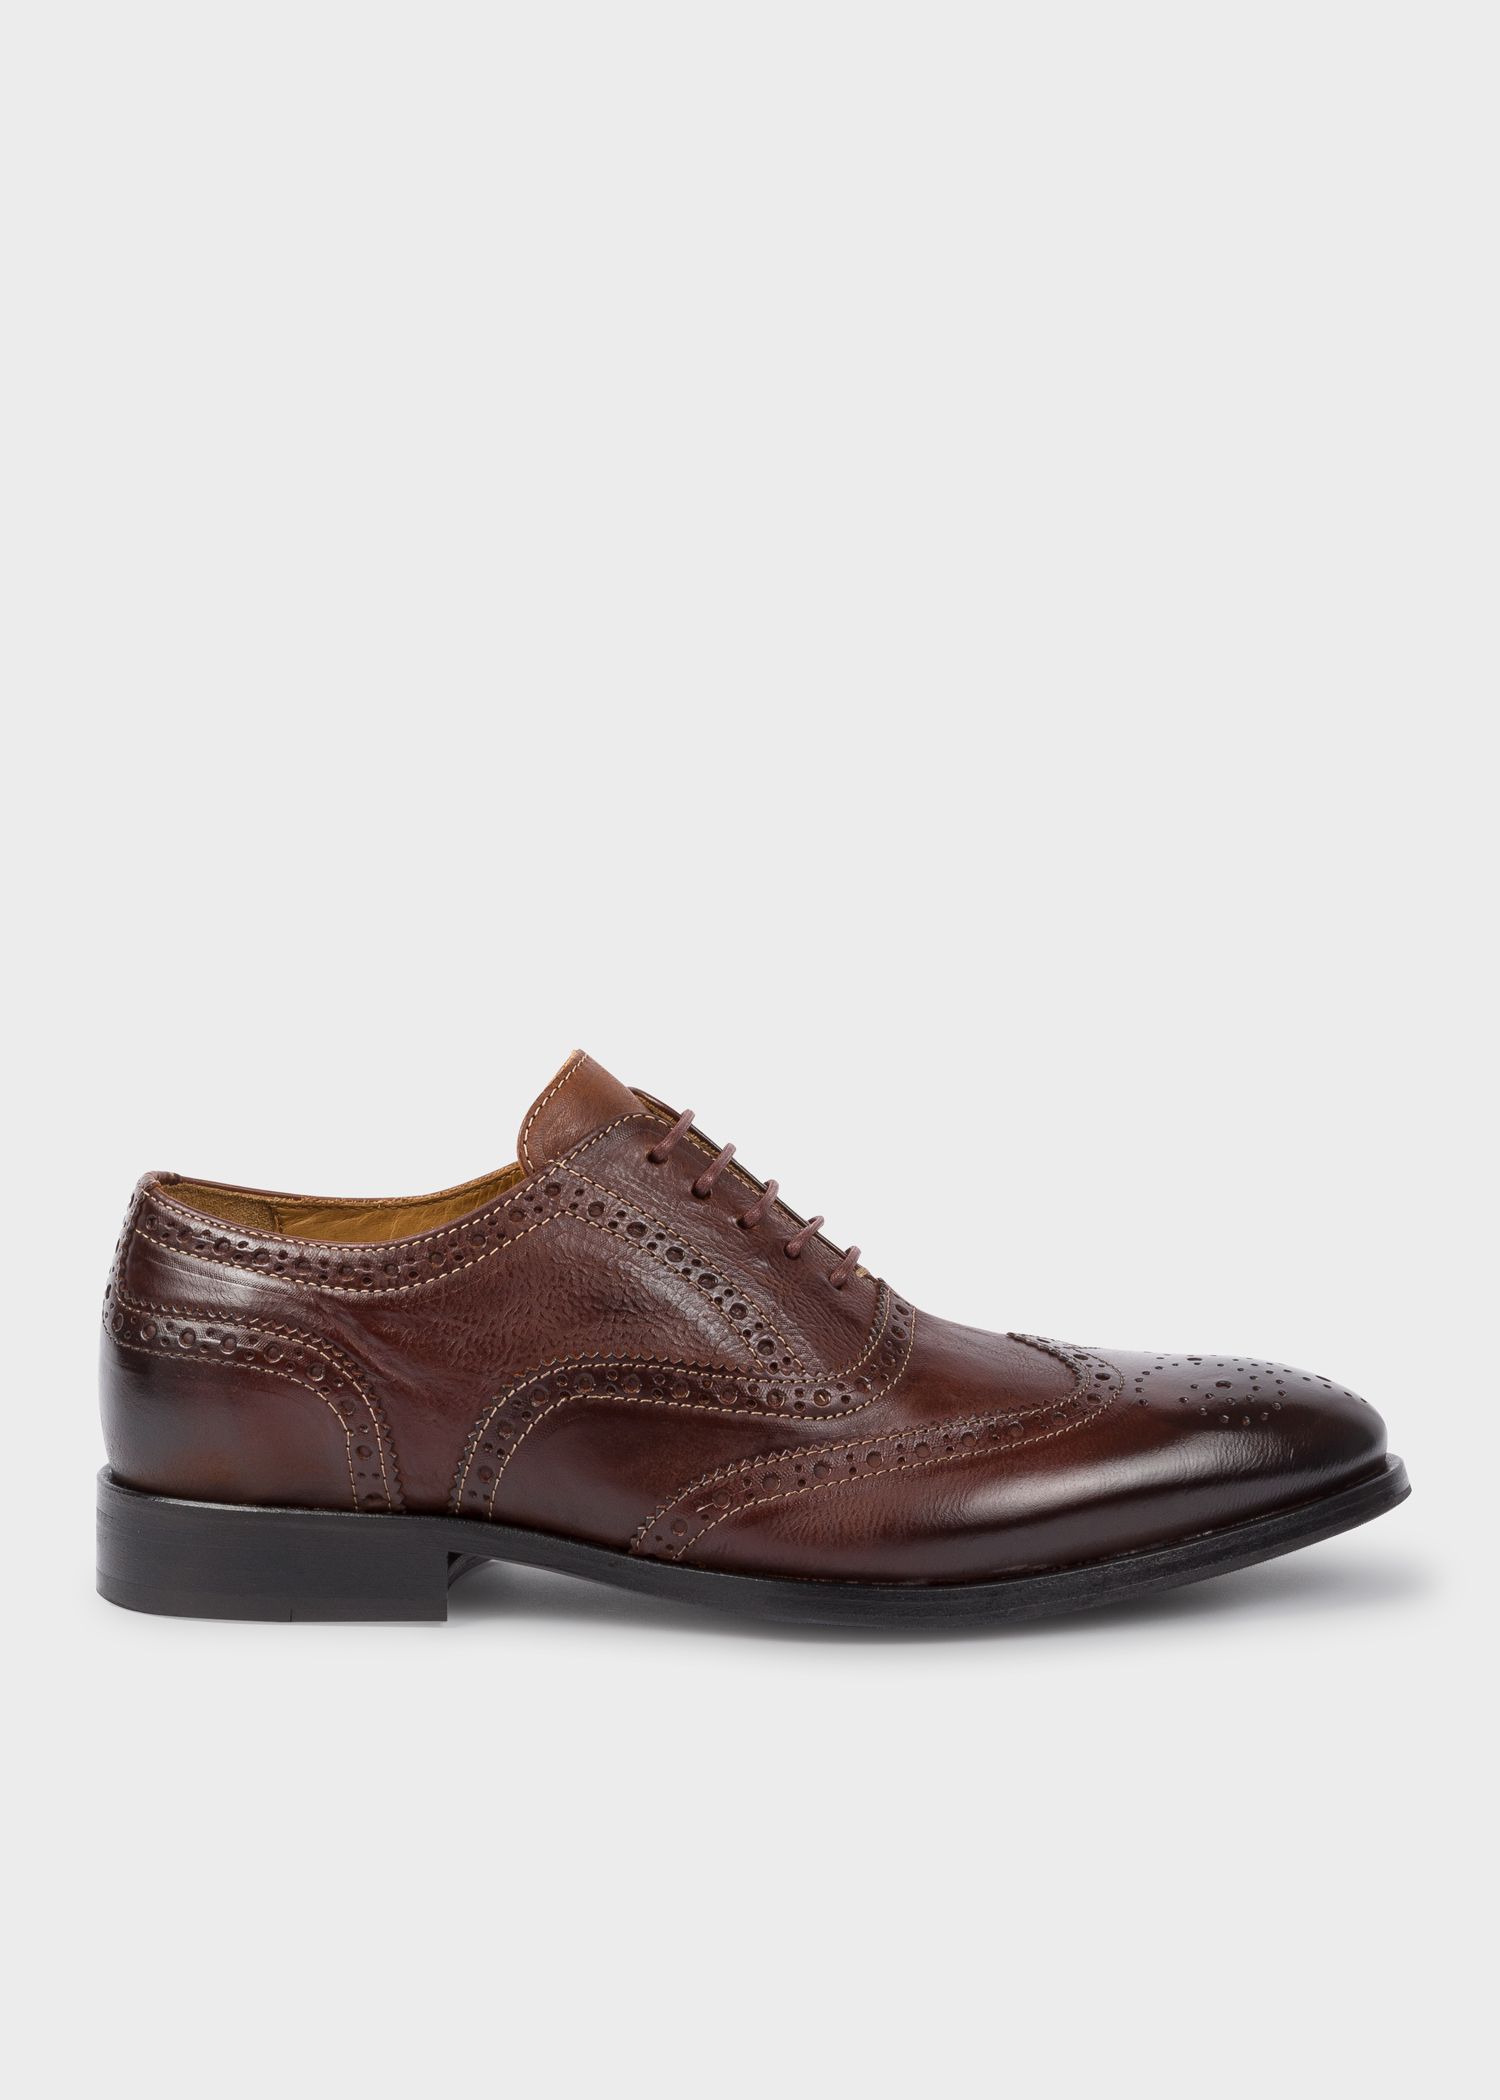 659f3b6d70d12 Side View - Men's Chocolate Brown Calf Leather 'Marti' Brogues Paul Smith